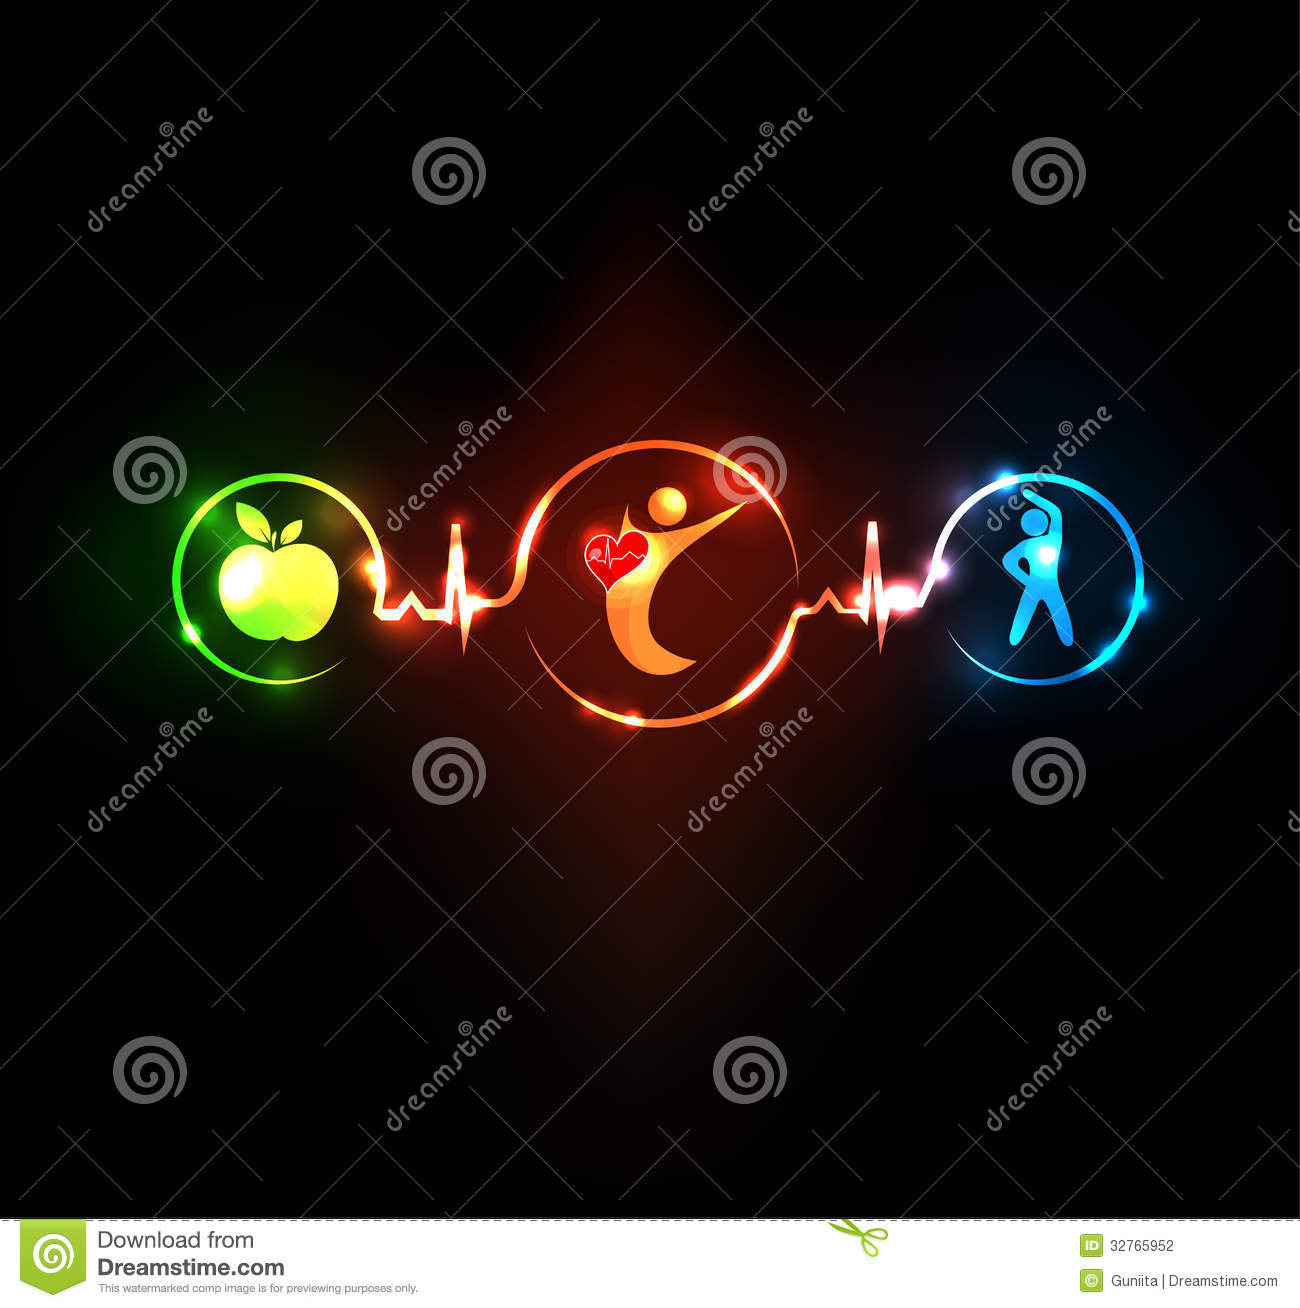 Health And Wellness Stock Photos Images, Royalty Free